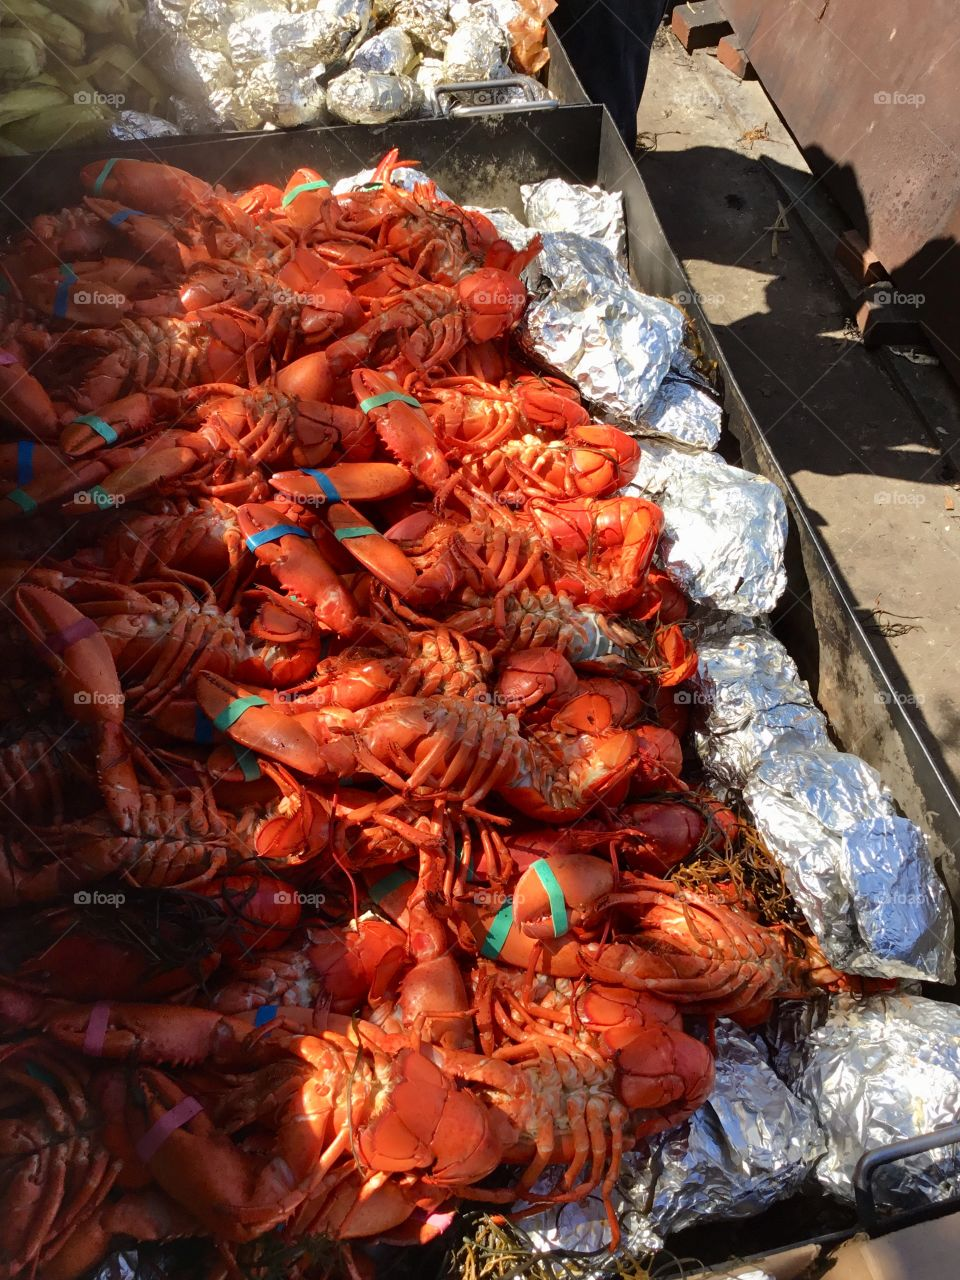 New England Lobster Bake - Fresh Maine Lobsters 🦞